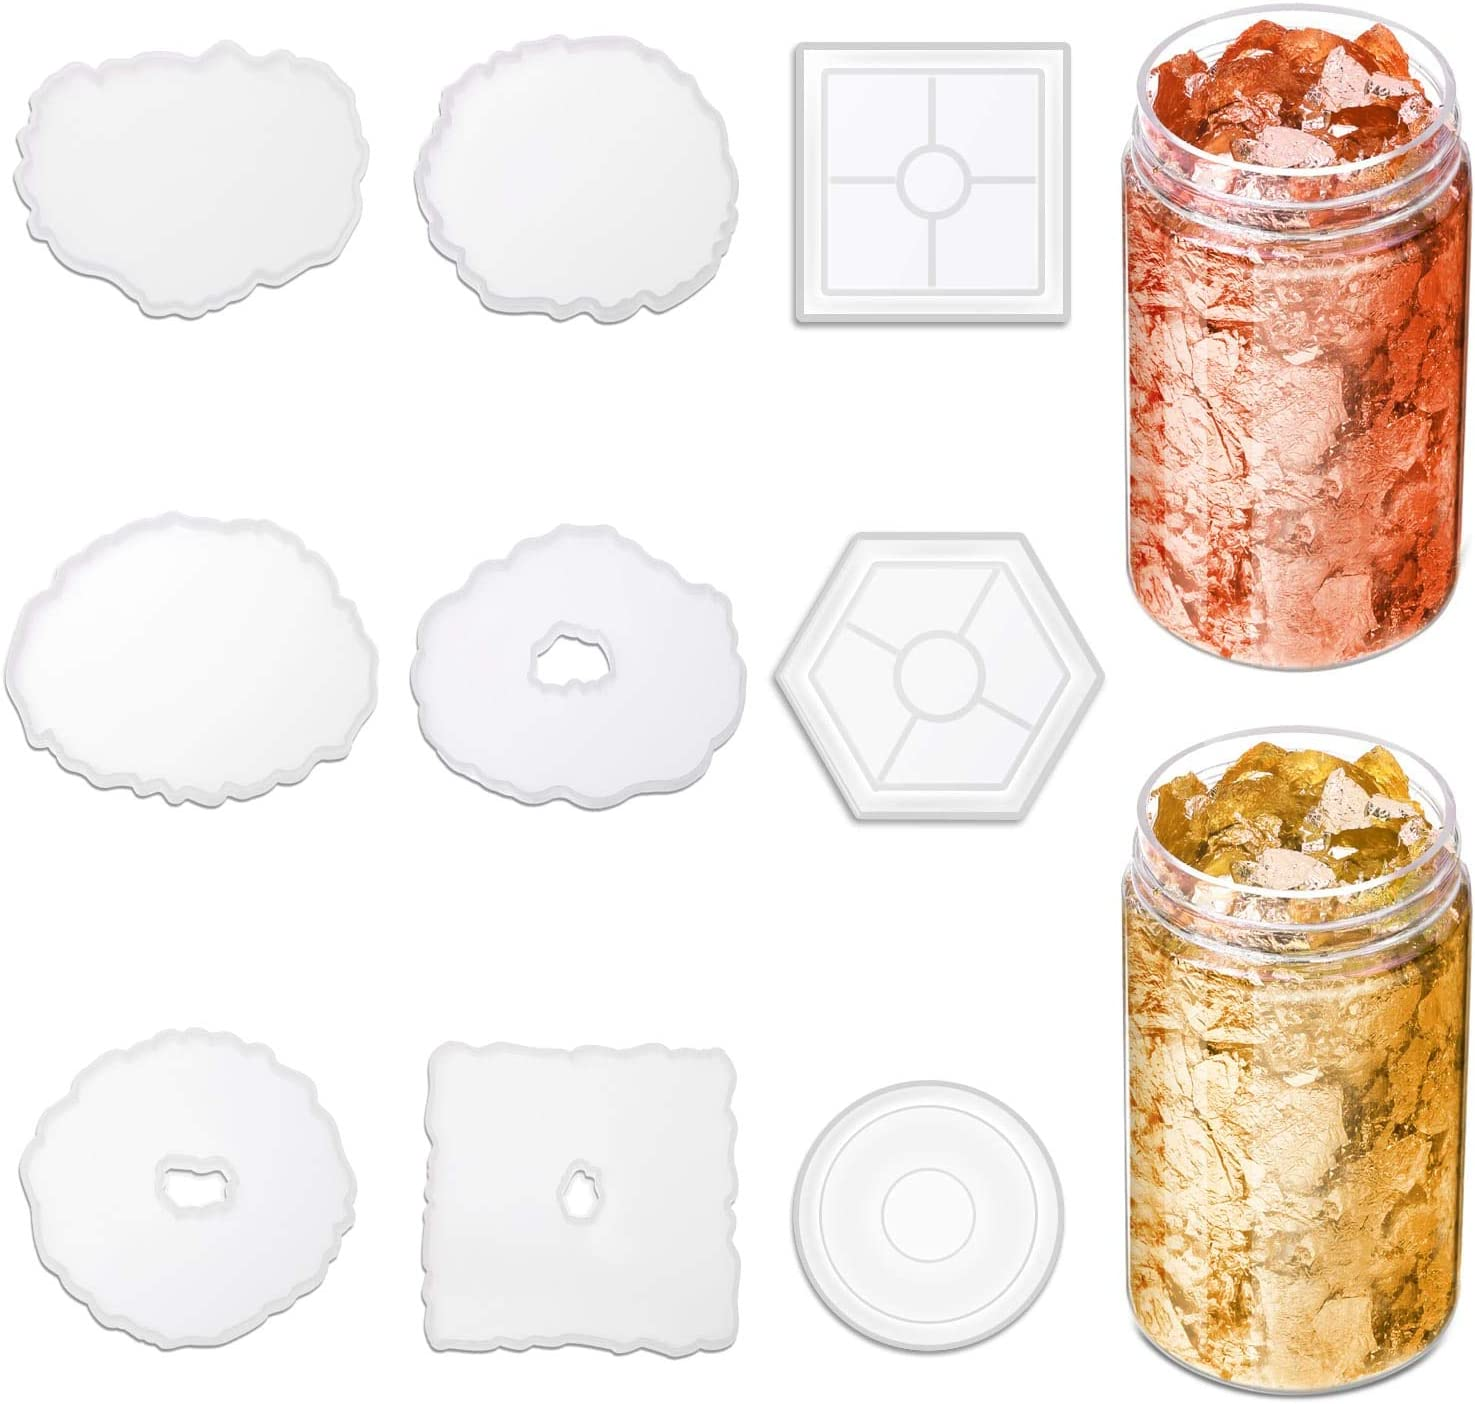 Resin Coaster Molds 67% OFF of Ranking TOP18 fixed price for 9 Anezus Pack Casting